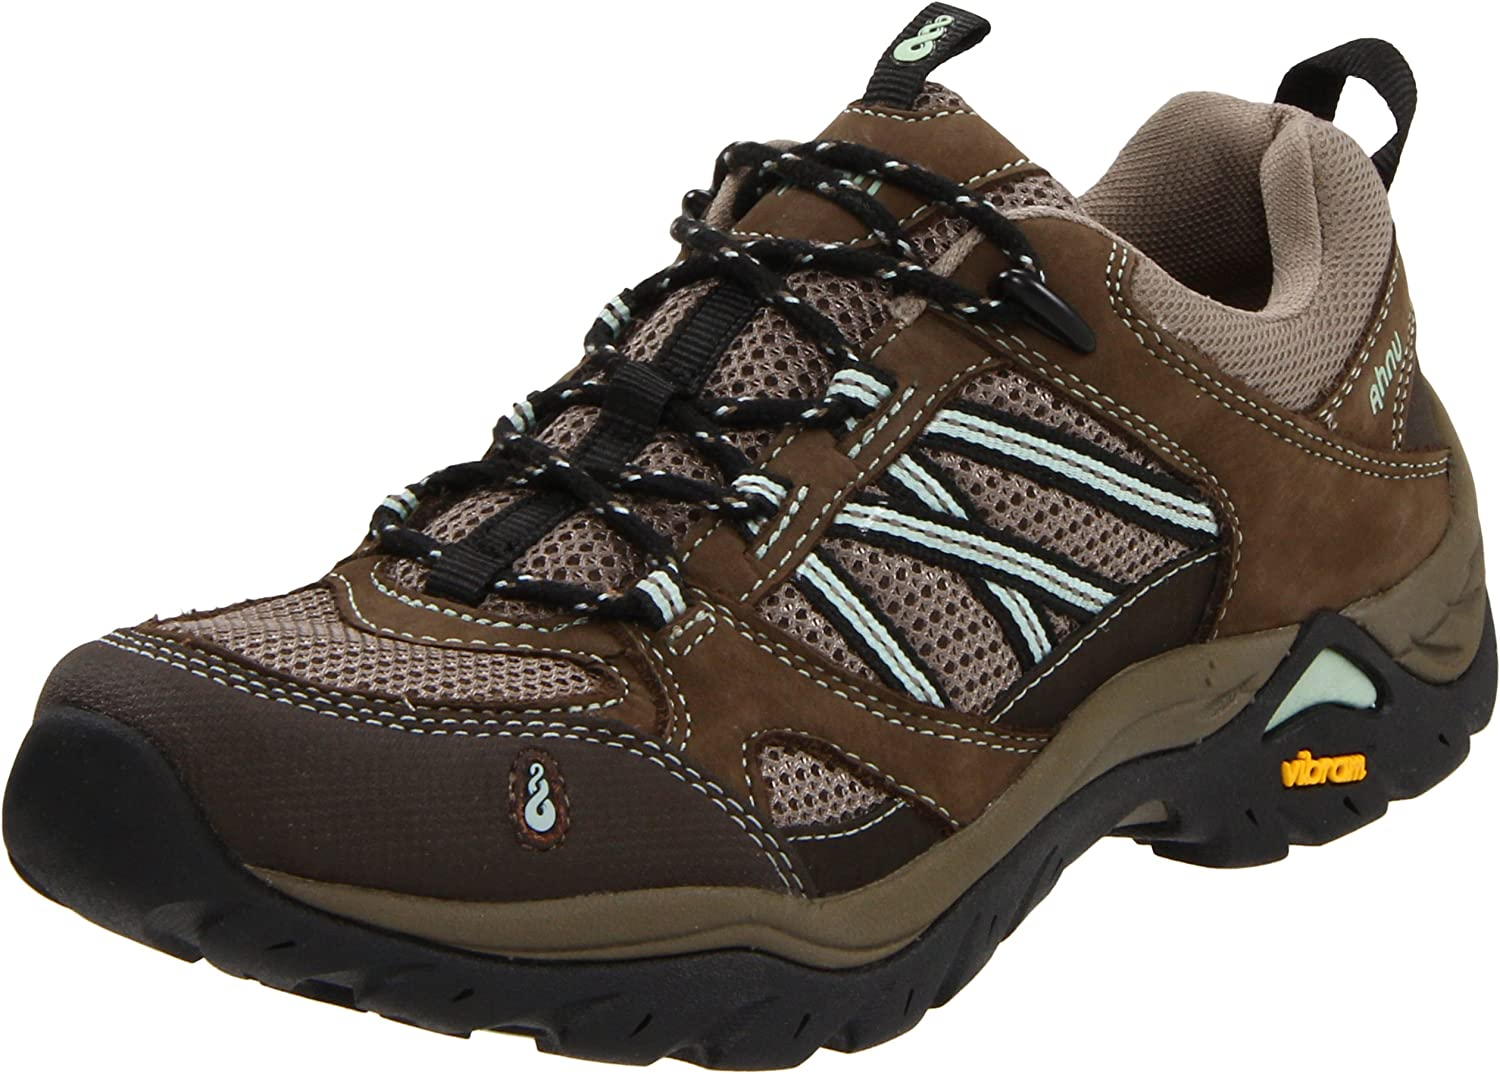 Ahnu Women's Sequoia Hiking Shoe